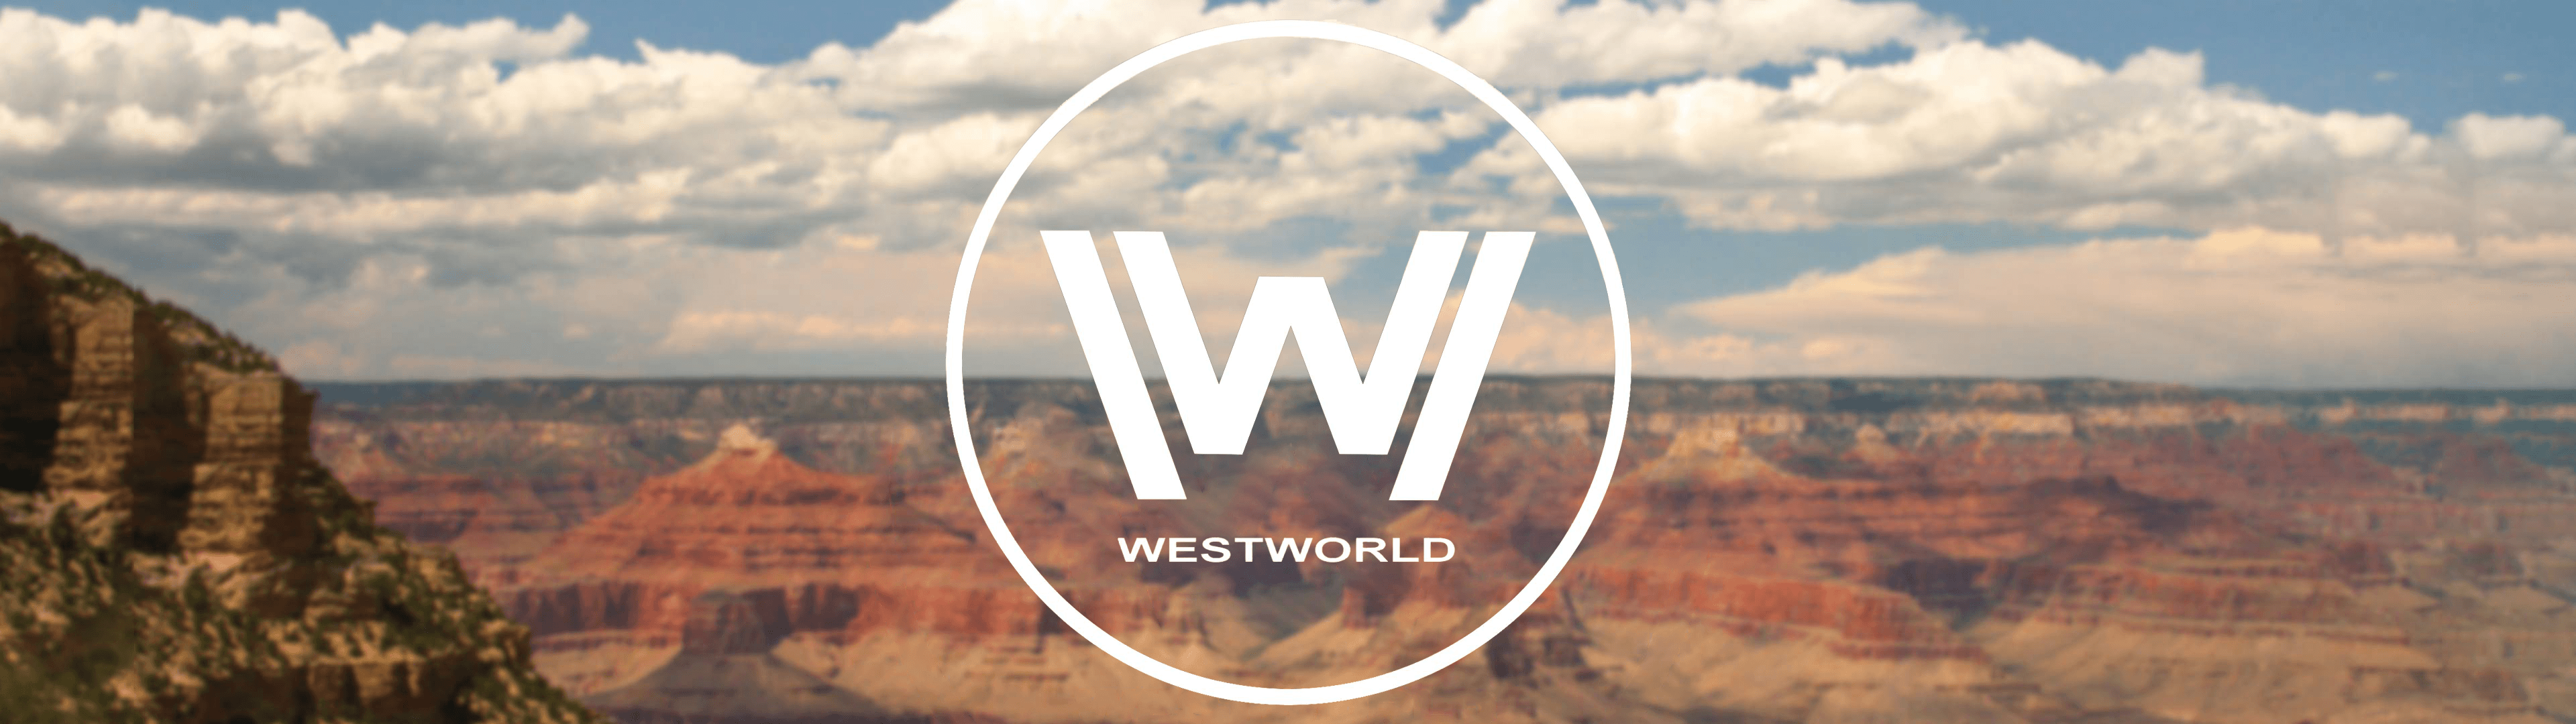 Tweak this Westworld wallpapers to be [3840x1080]? : multiwall